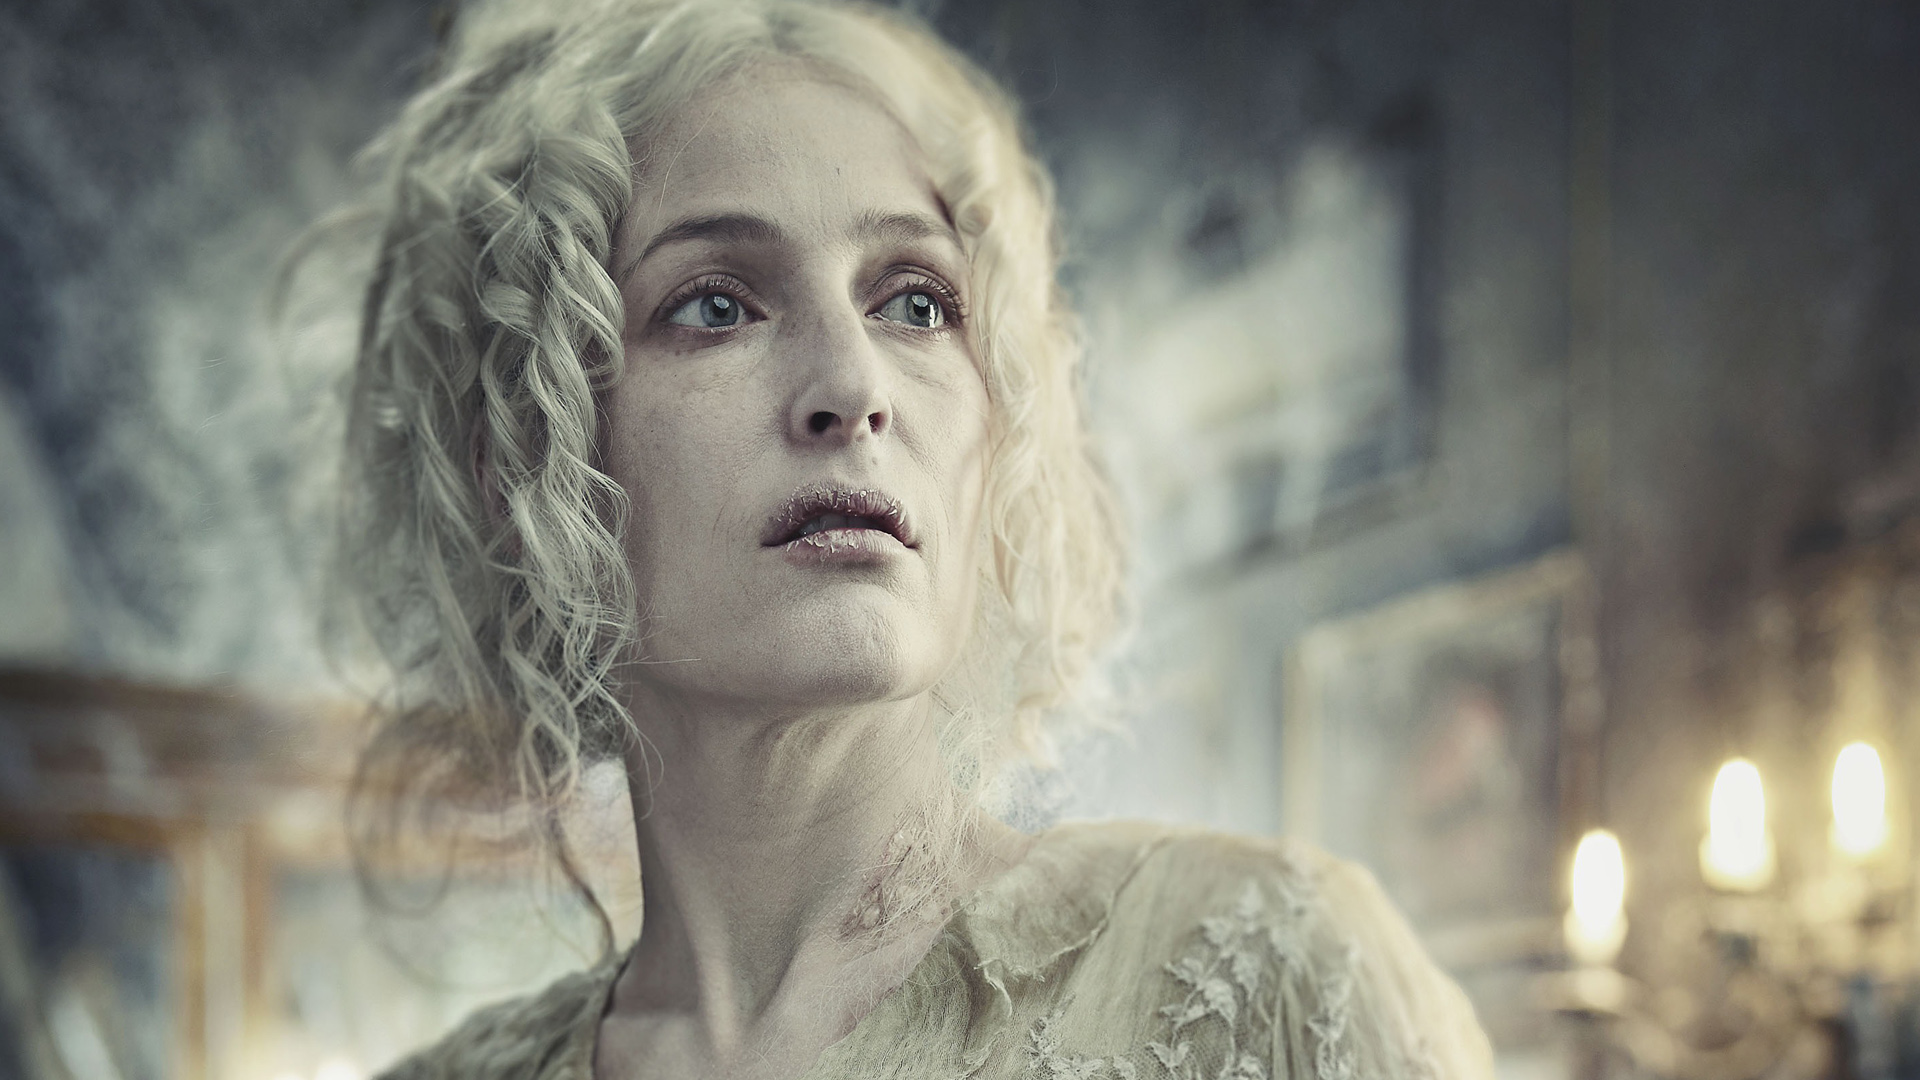 great expectations miss havisham In the book great expectations, by charles dickens, many of the characters have personal prison, whether literal or emotional prison by definition is any place of confinement or involuntary restraint miss havisham secludes herself voluntarily in satis house, ensured to stay there by her guards of.